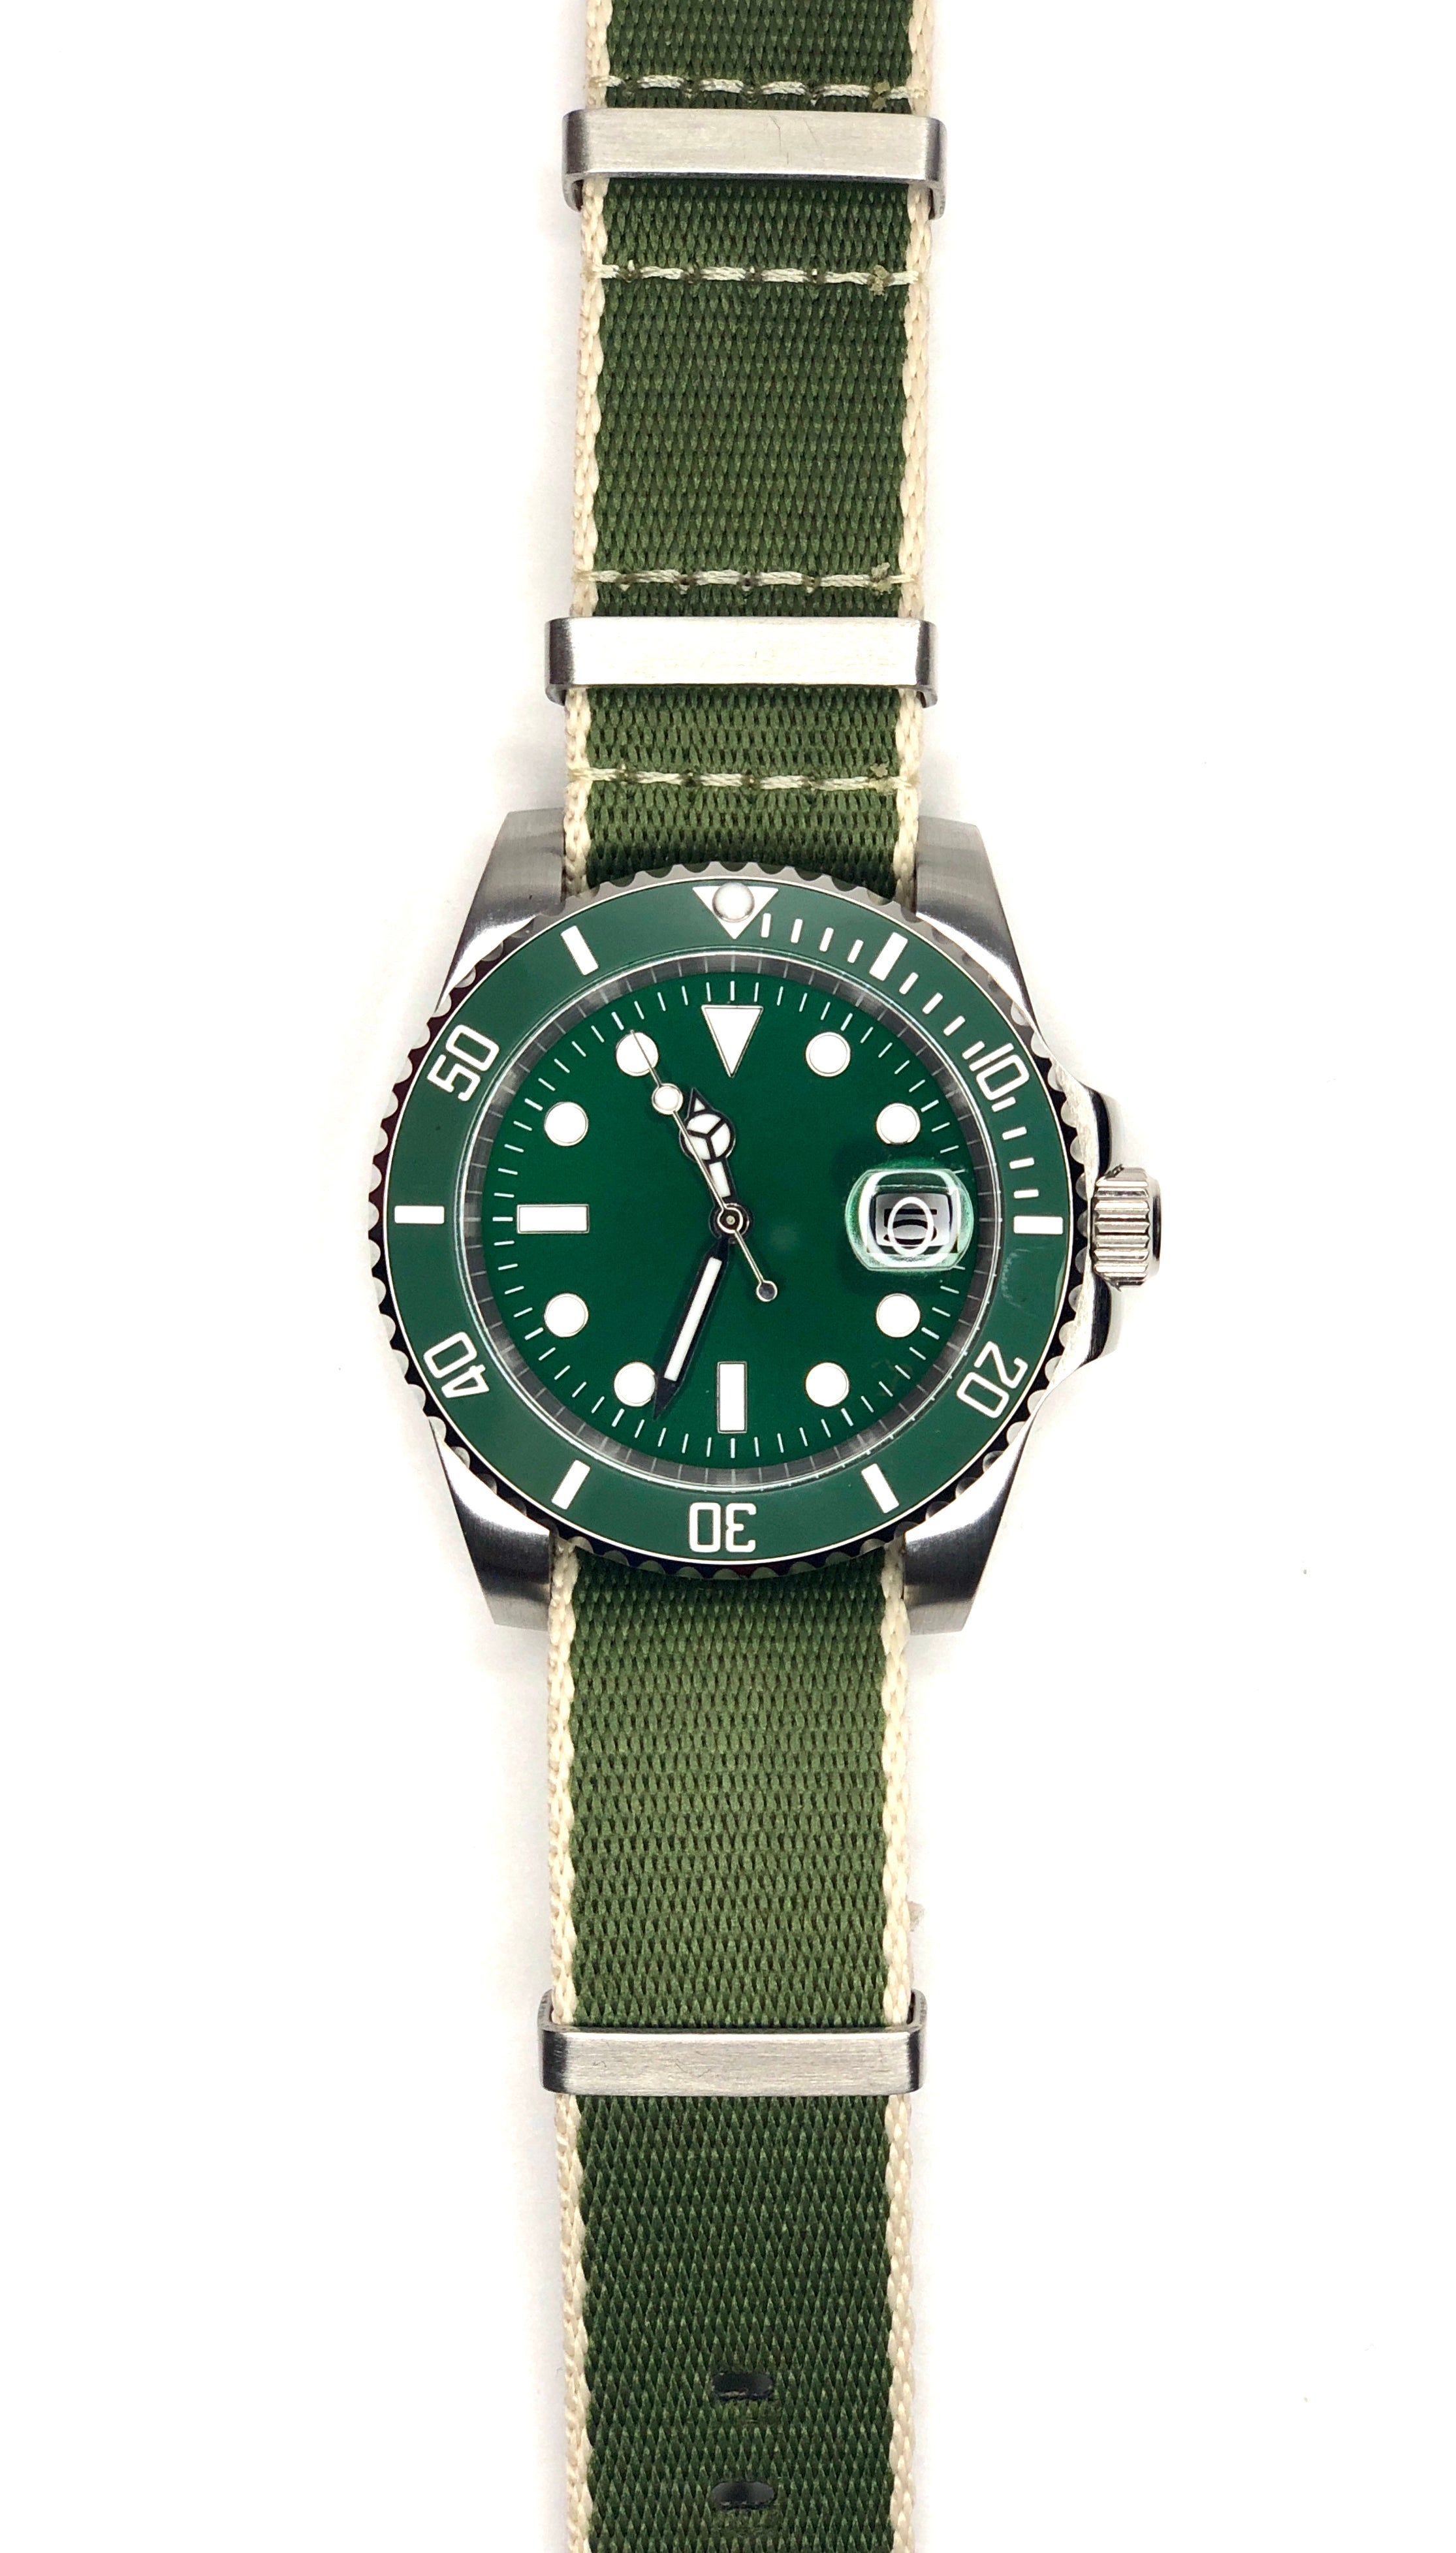 Army - Submariner Homage Watch